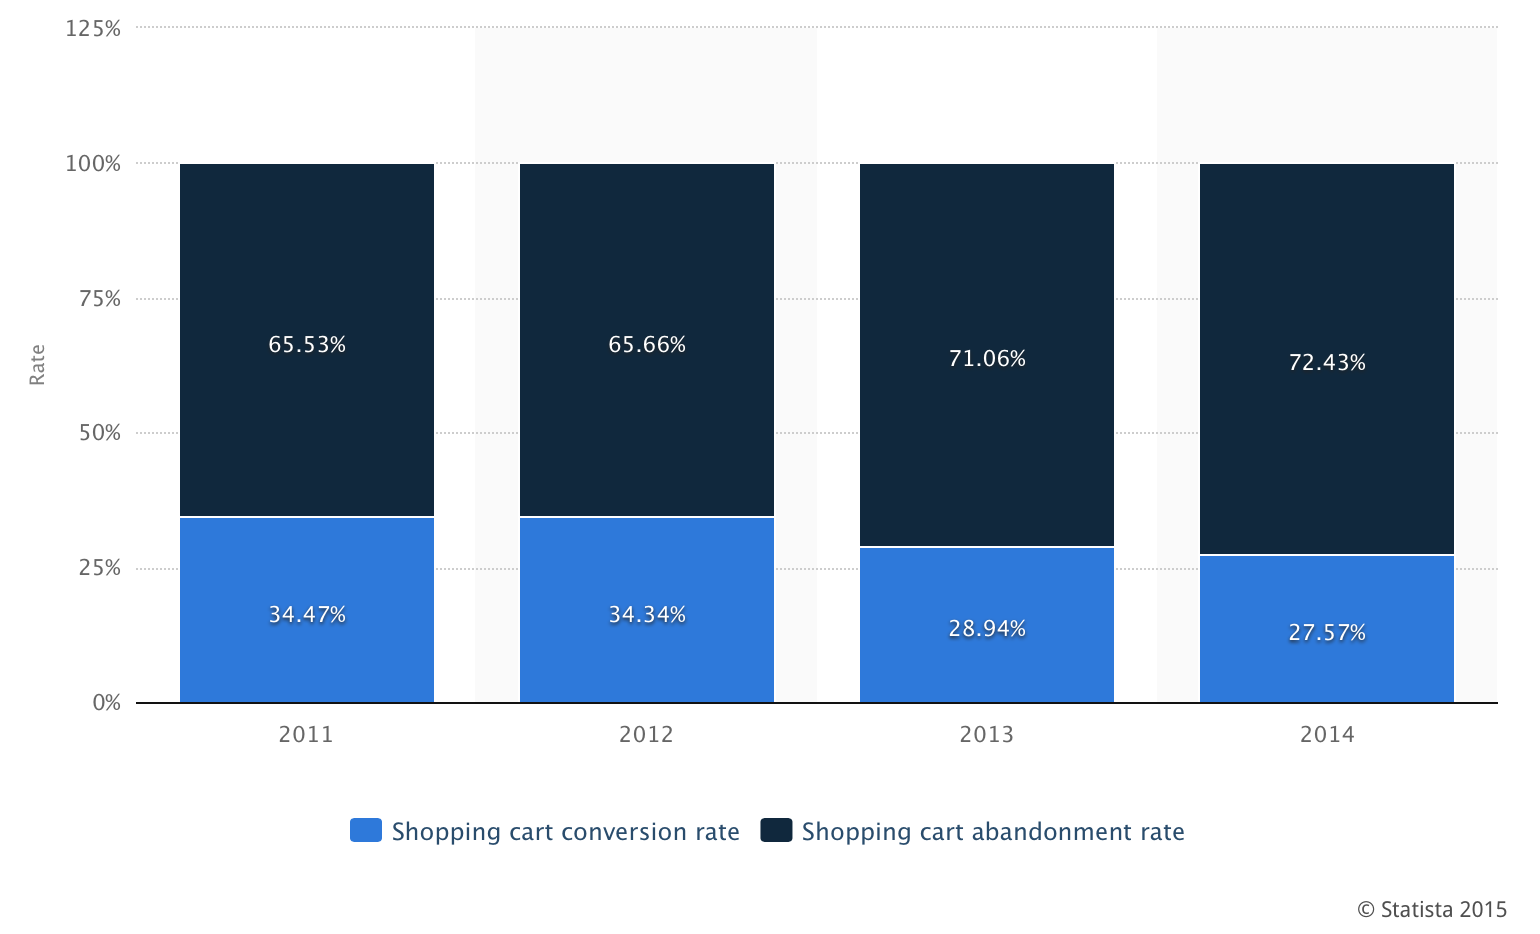 Shopping cart abandonment rates